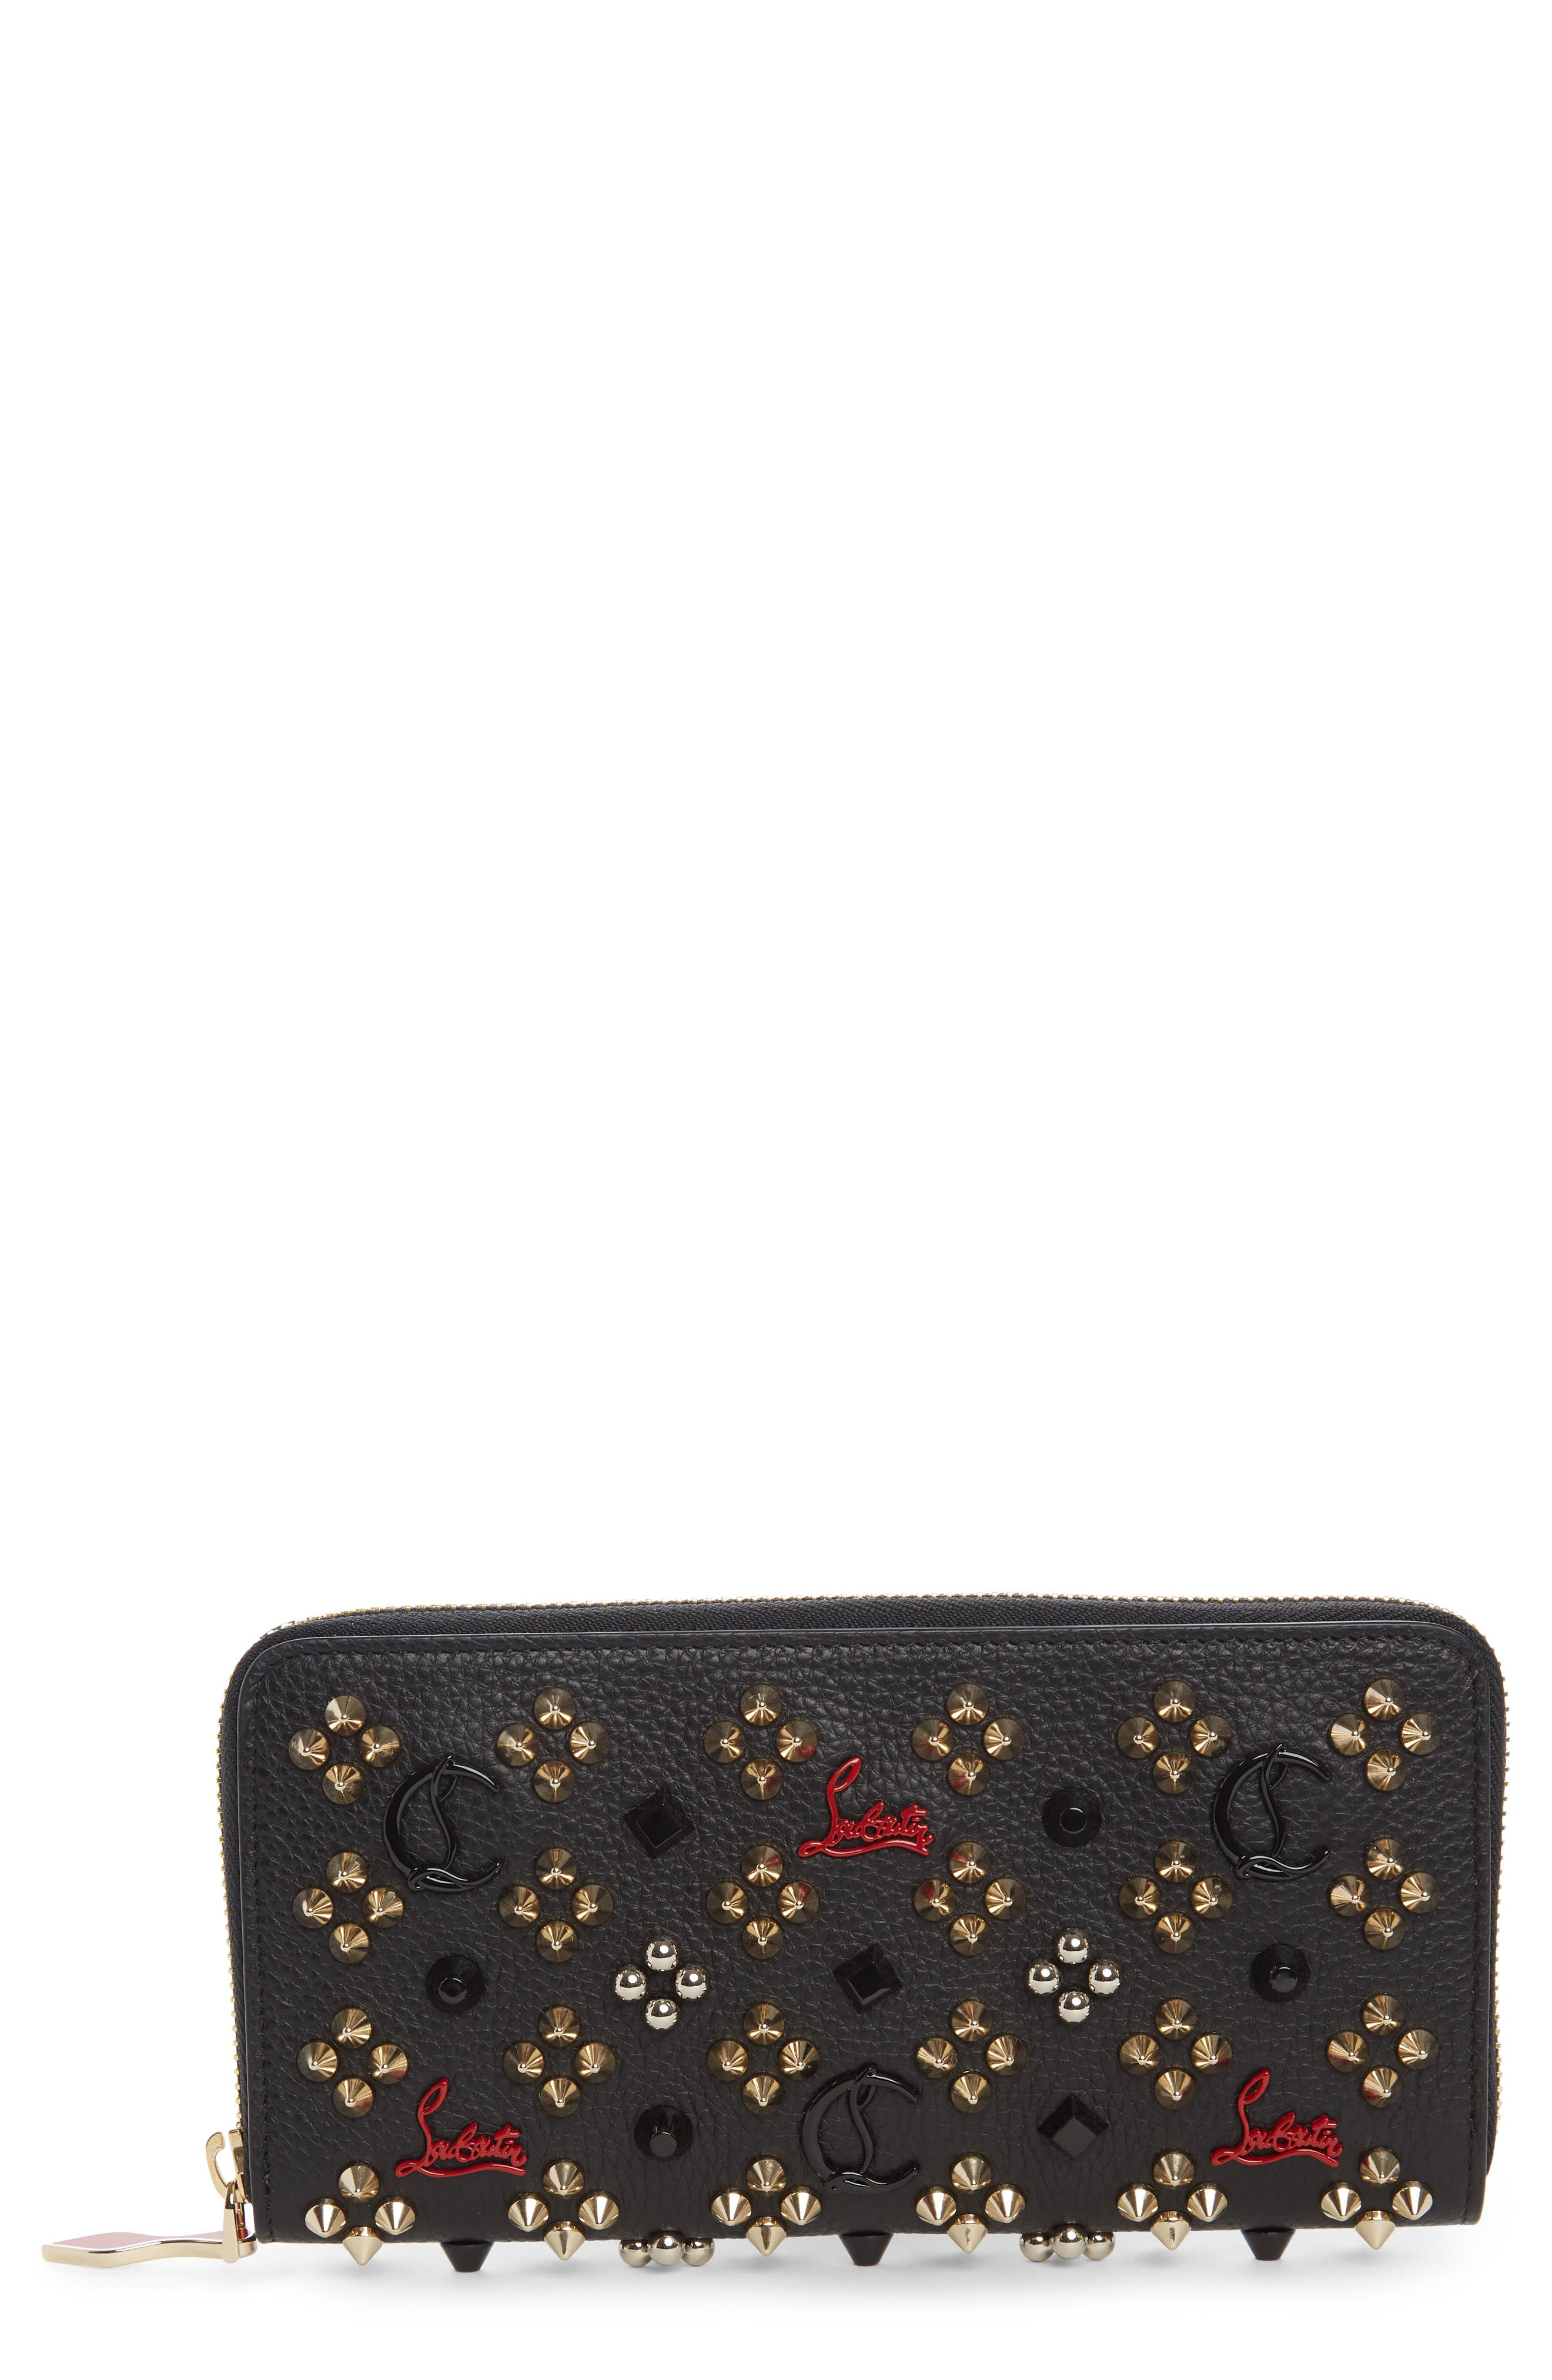 Panettone Spiked Calfskin Wallet,                             Main thumbnail 1, color,                             BLACK/ RED-GOLD